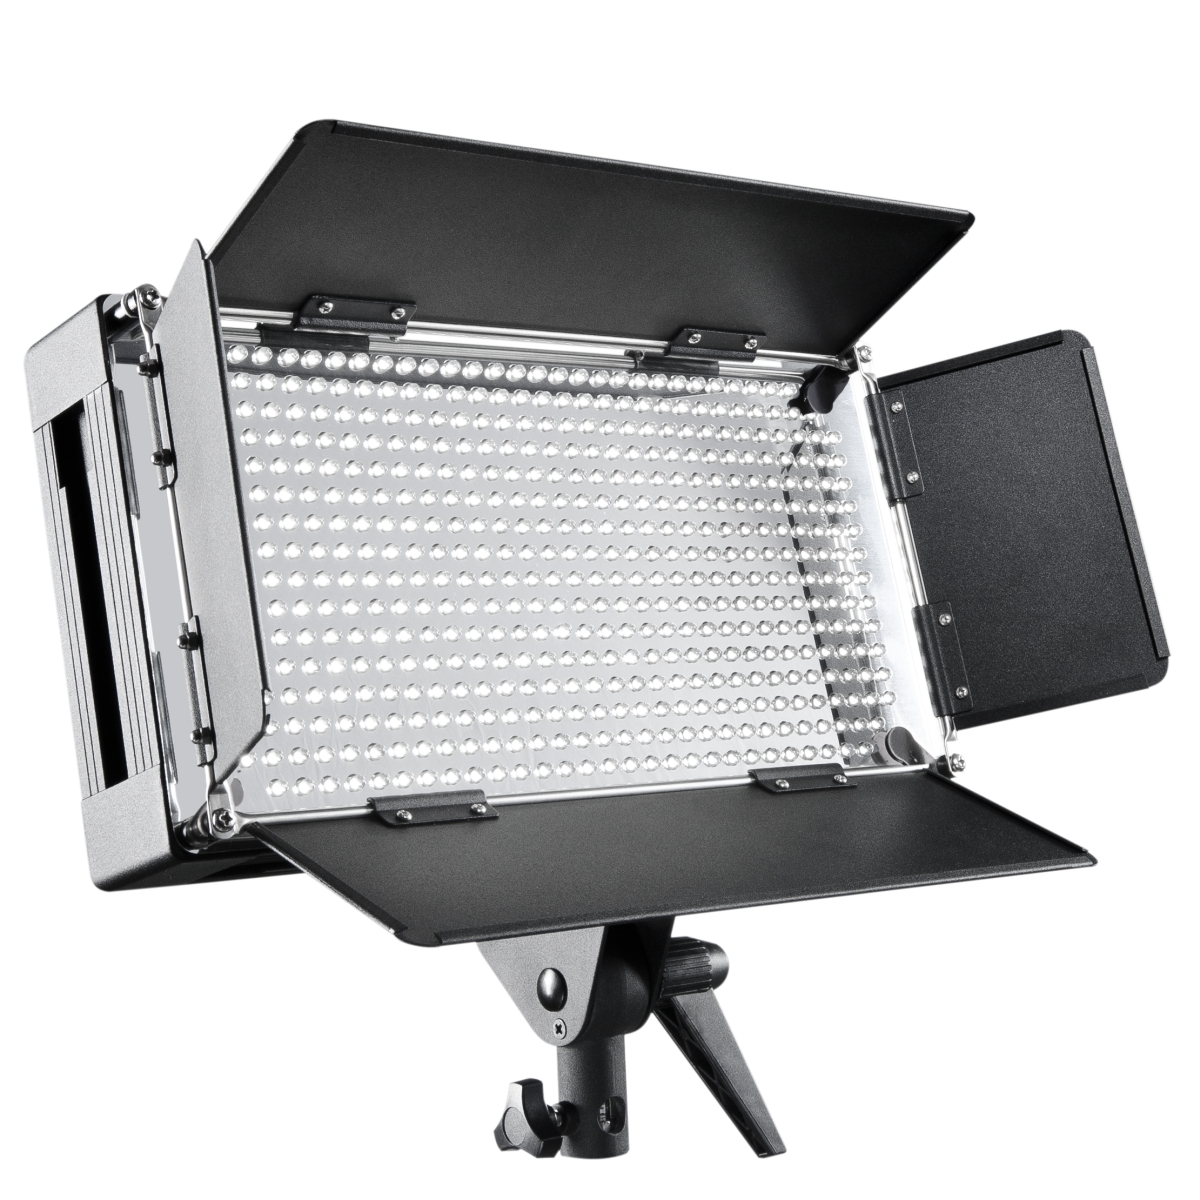 Walimex pro LED 500 Flächenleuchte dimmbar 30W